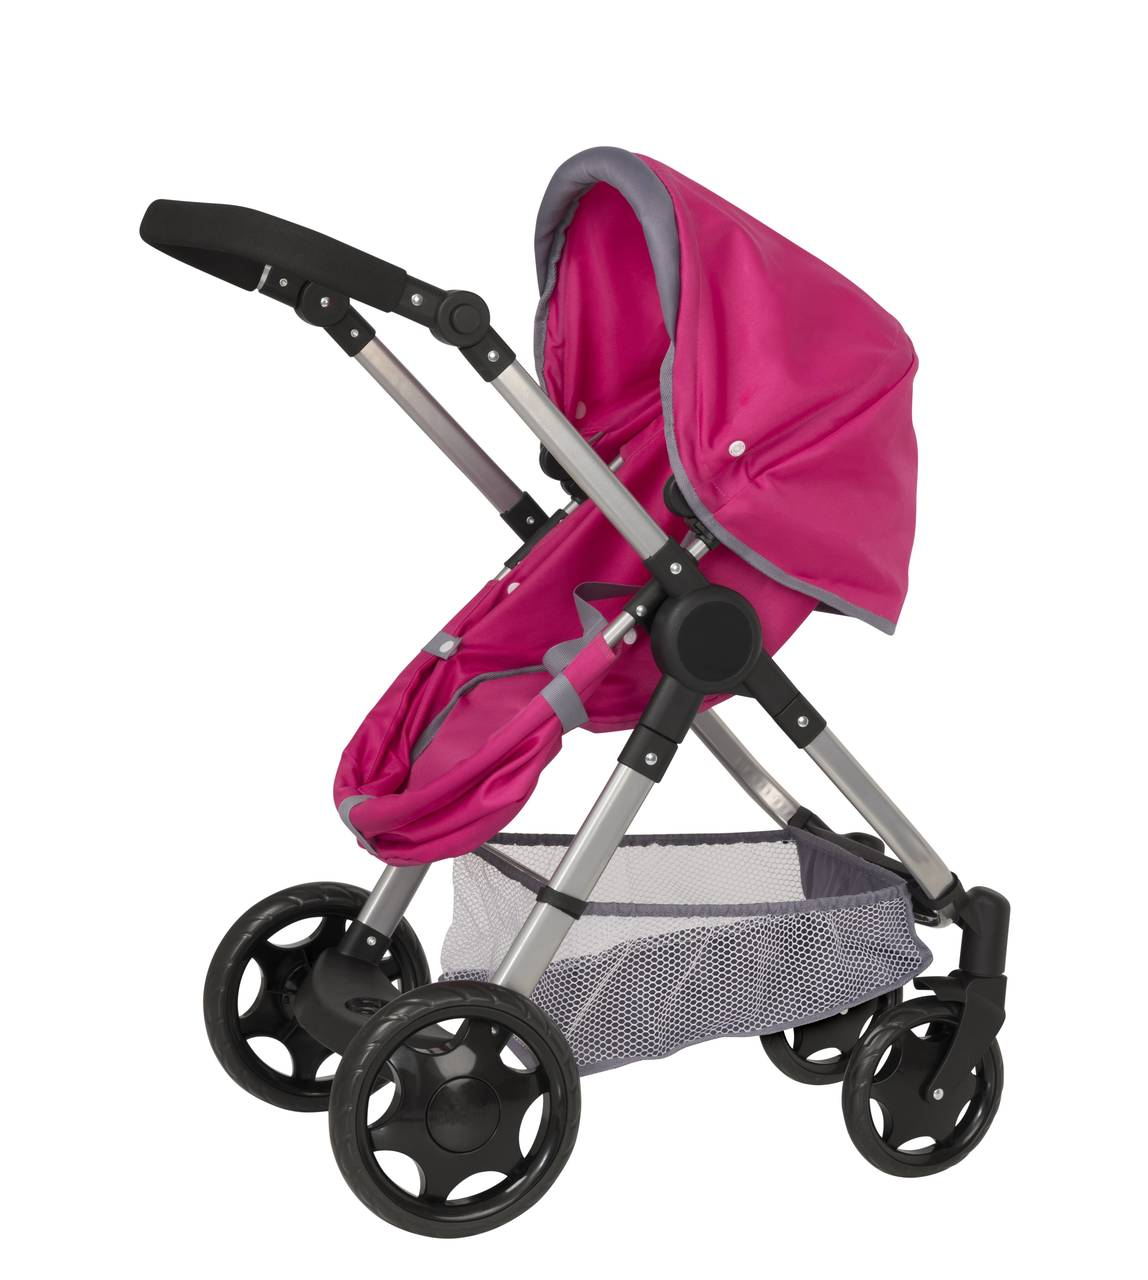 64452d16fa43 Chicco Evolve Travel System - Toymate